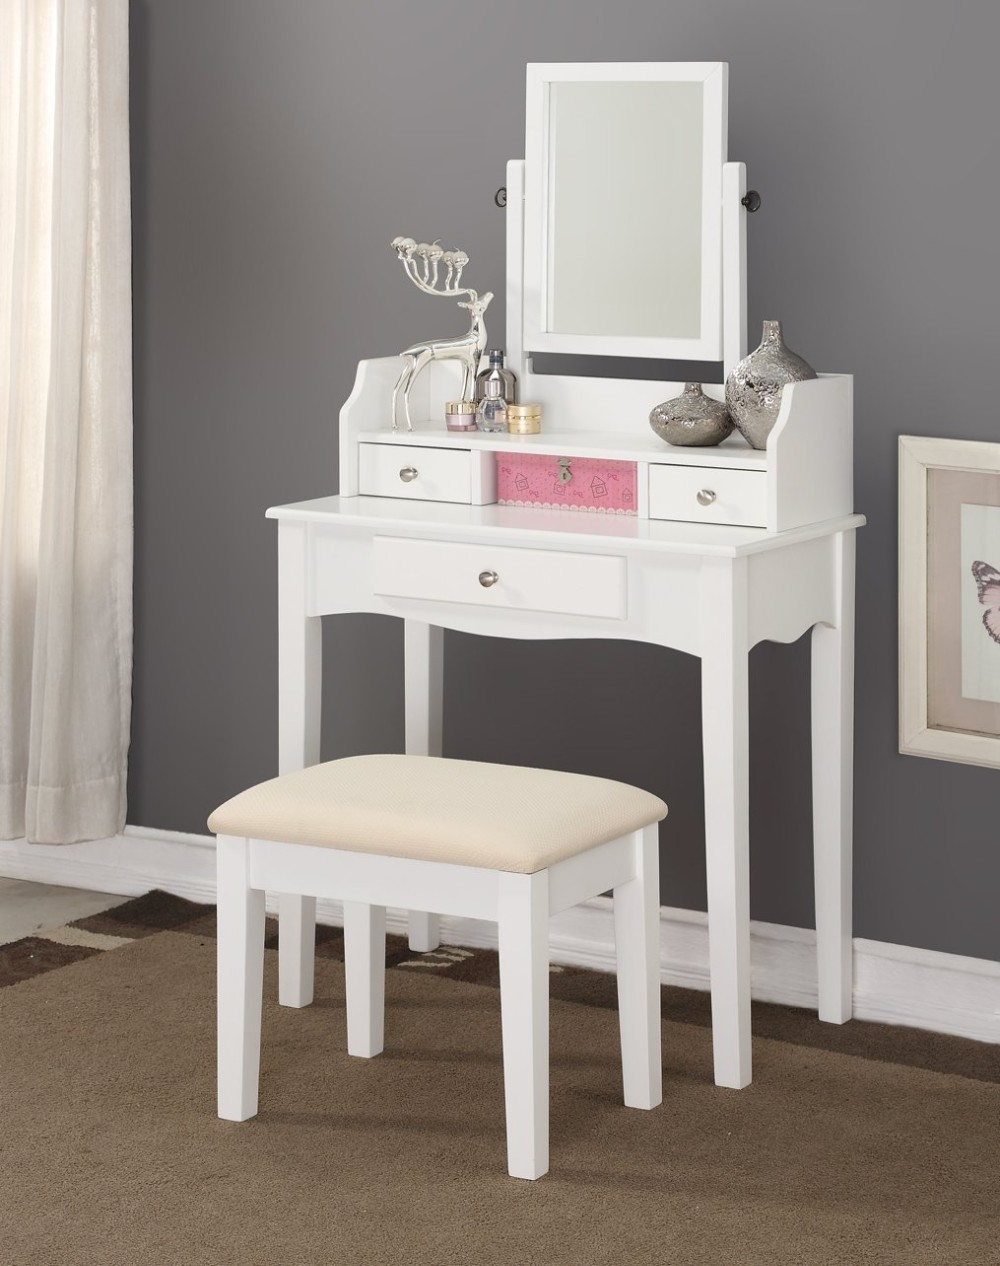 Simple White Color Wooden Dressing Table With Modern Design Make Up Table